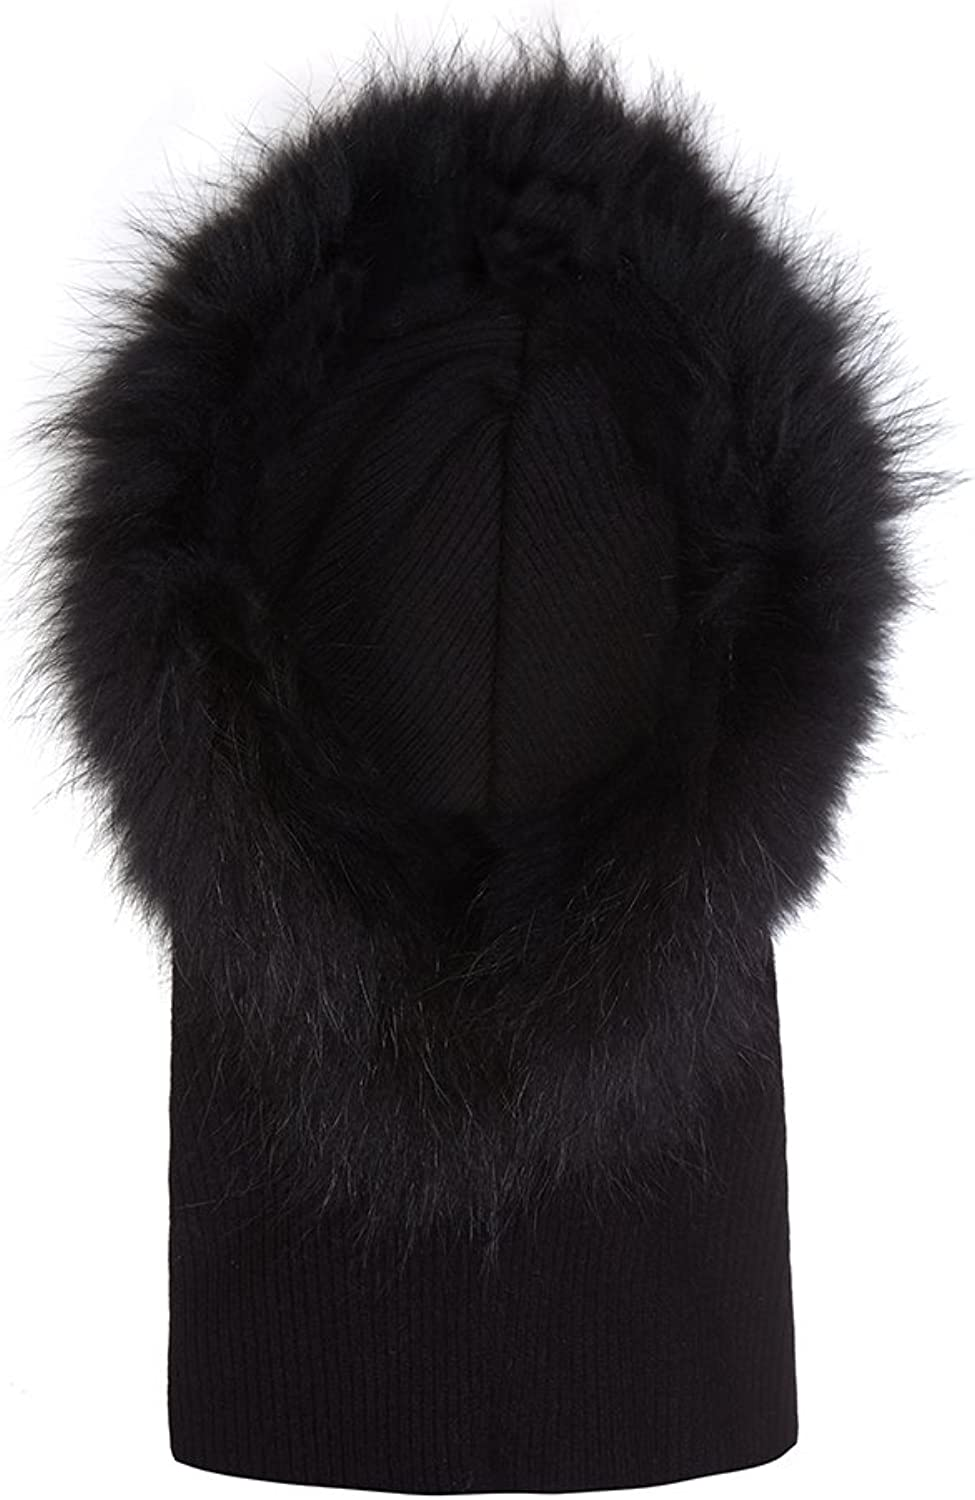 Cashmere Hooded Scarf with Fur